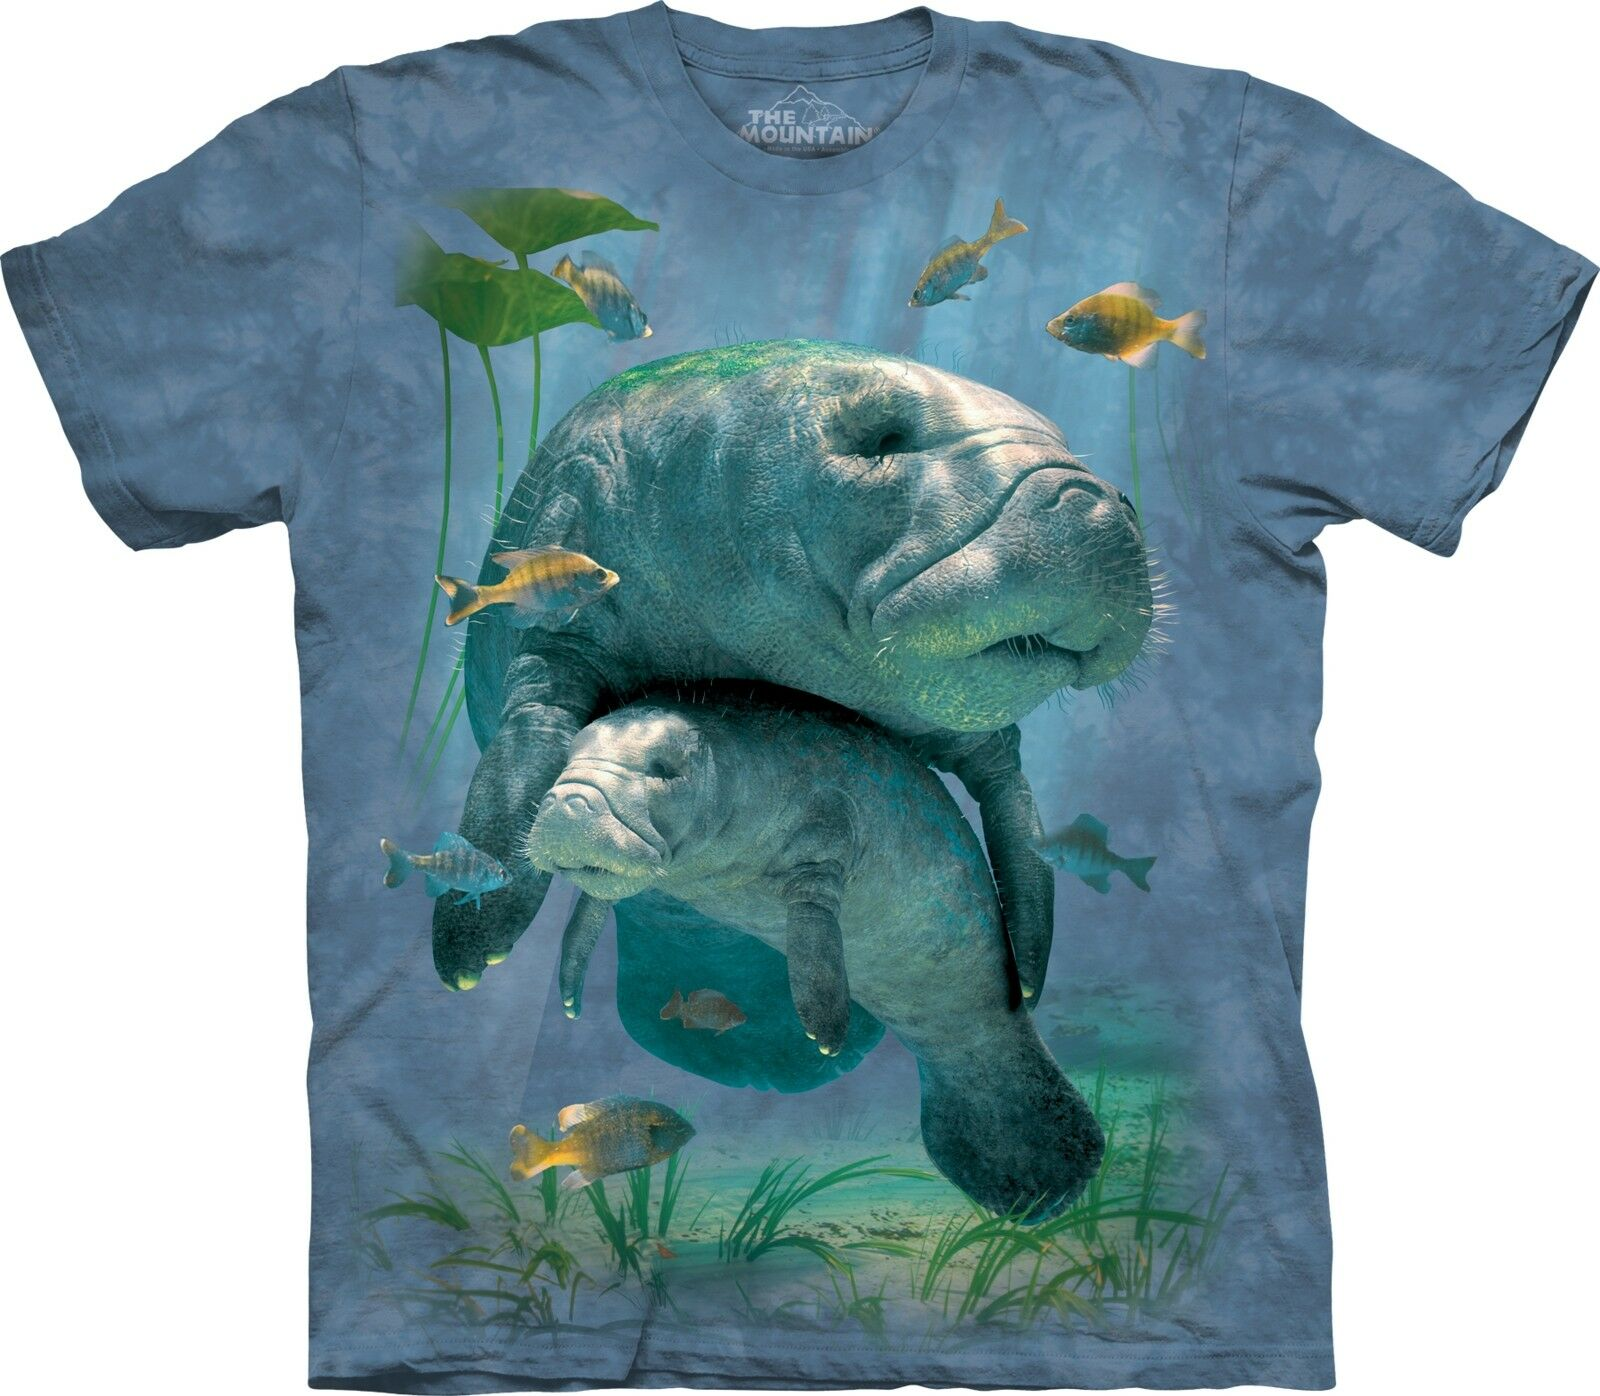 The Mountain Unisex Adult Manatees Collage Aquatic T Shirt